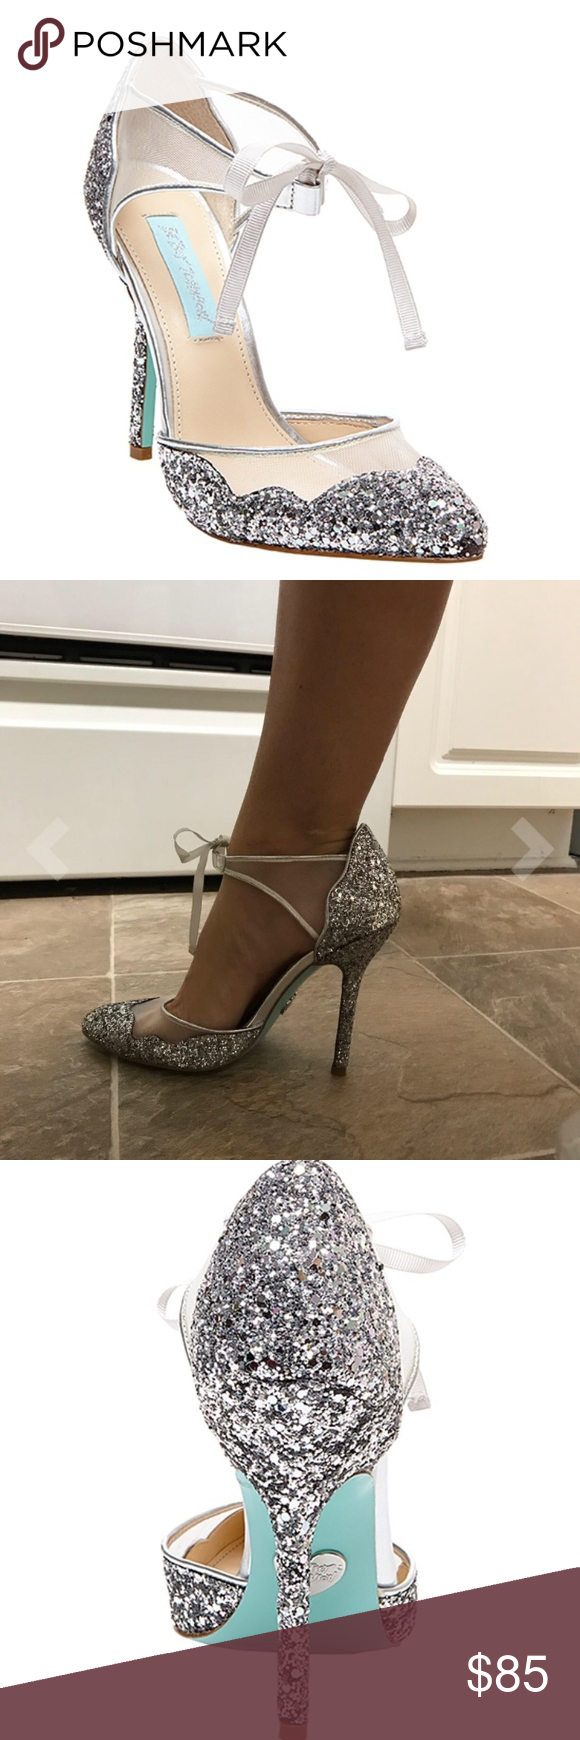 a857f84c132 NEW Betsey Johnson Silver Glitter Mesh Stela Pumps Brand new in box!! Blue  by